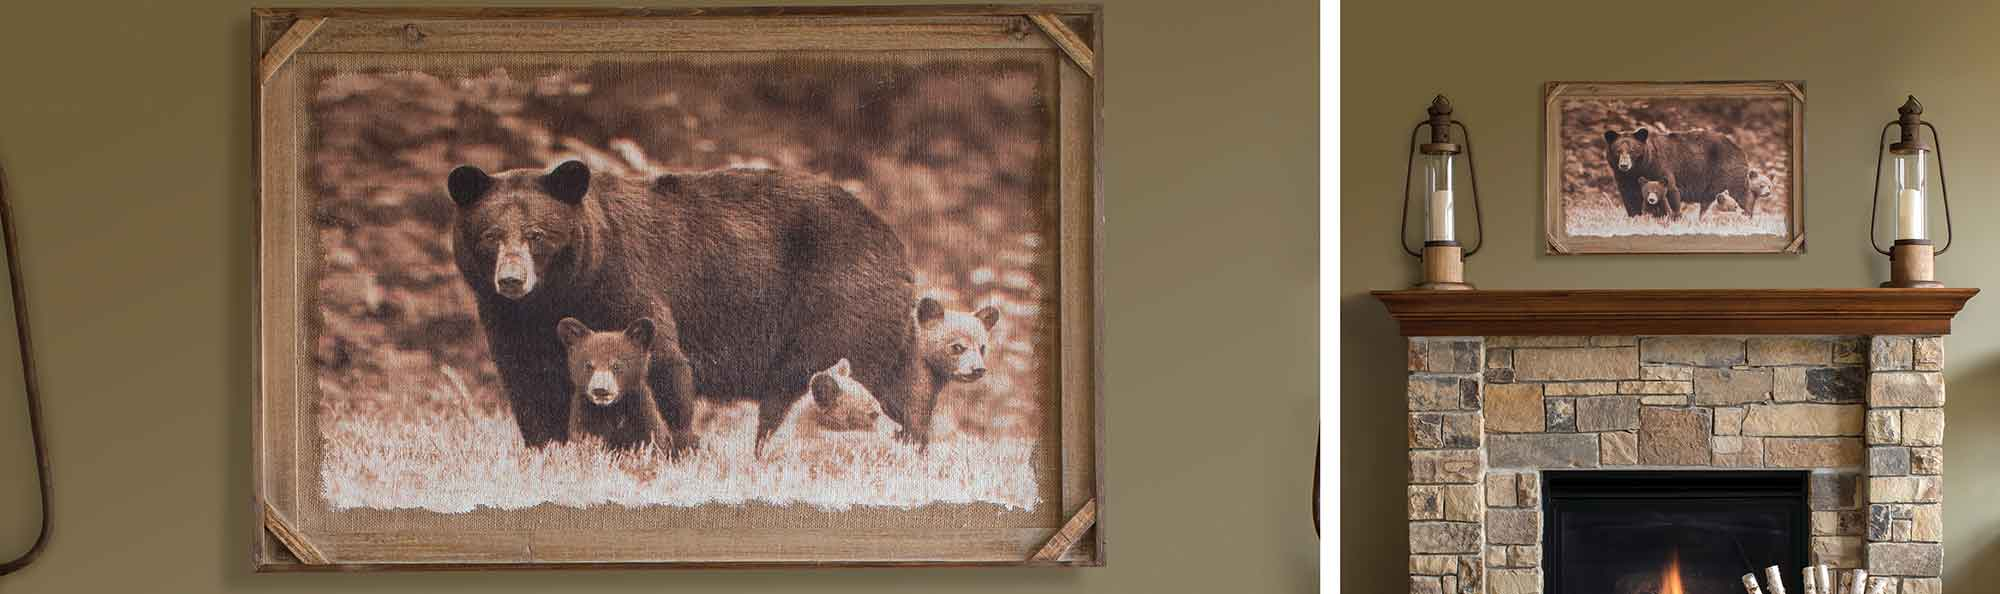 Photo in a fame of two bears above a fireplace